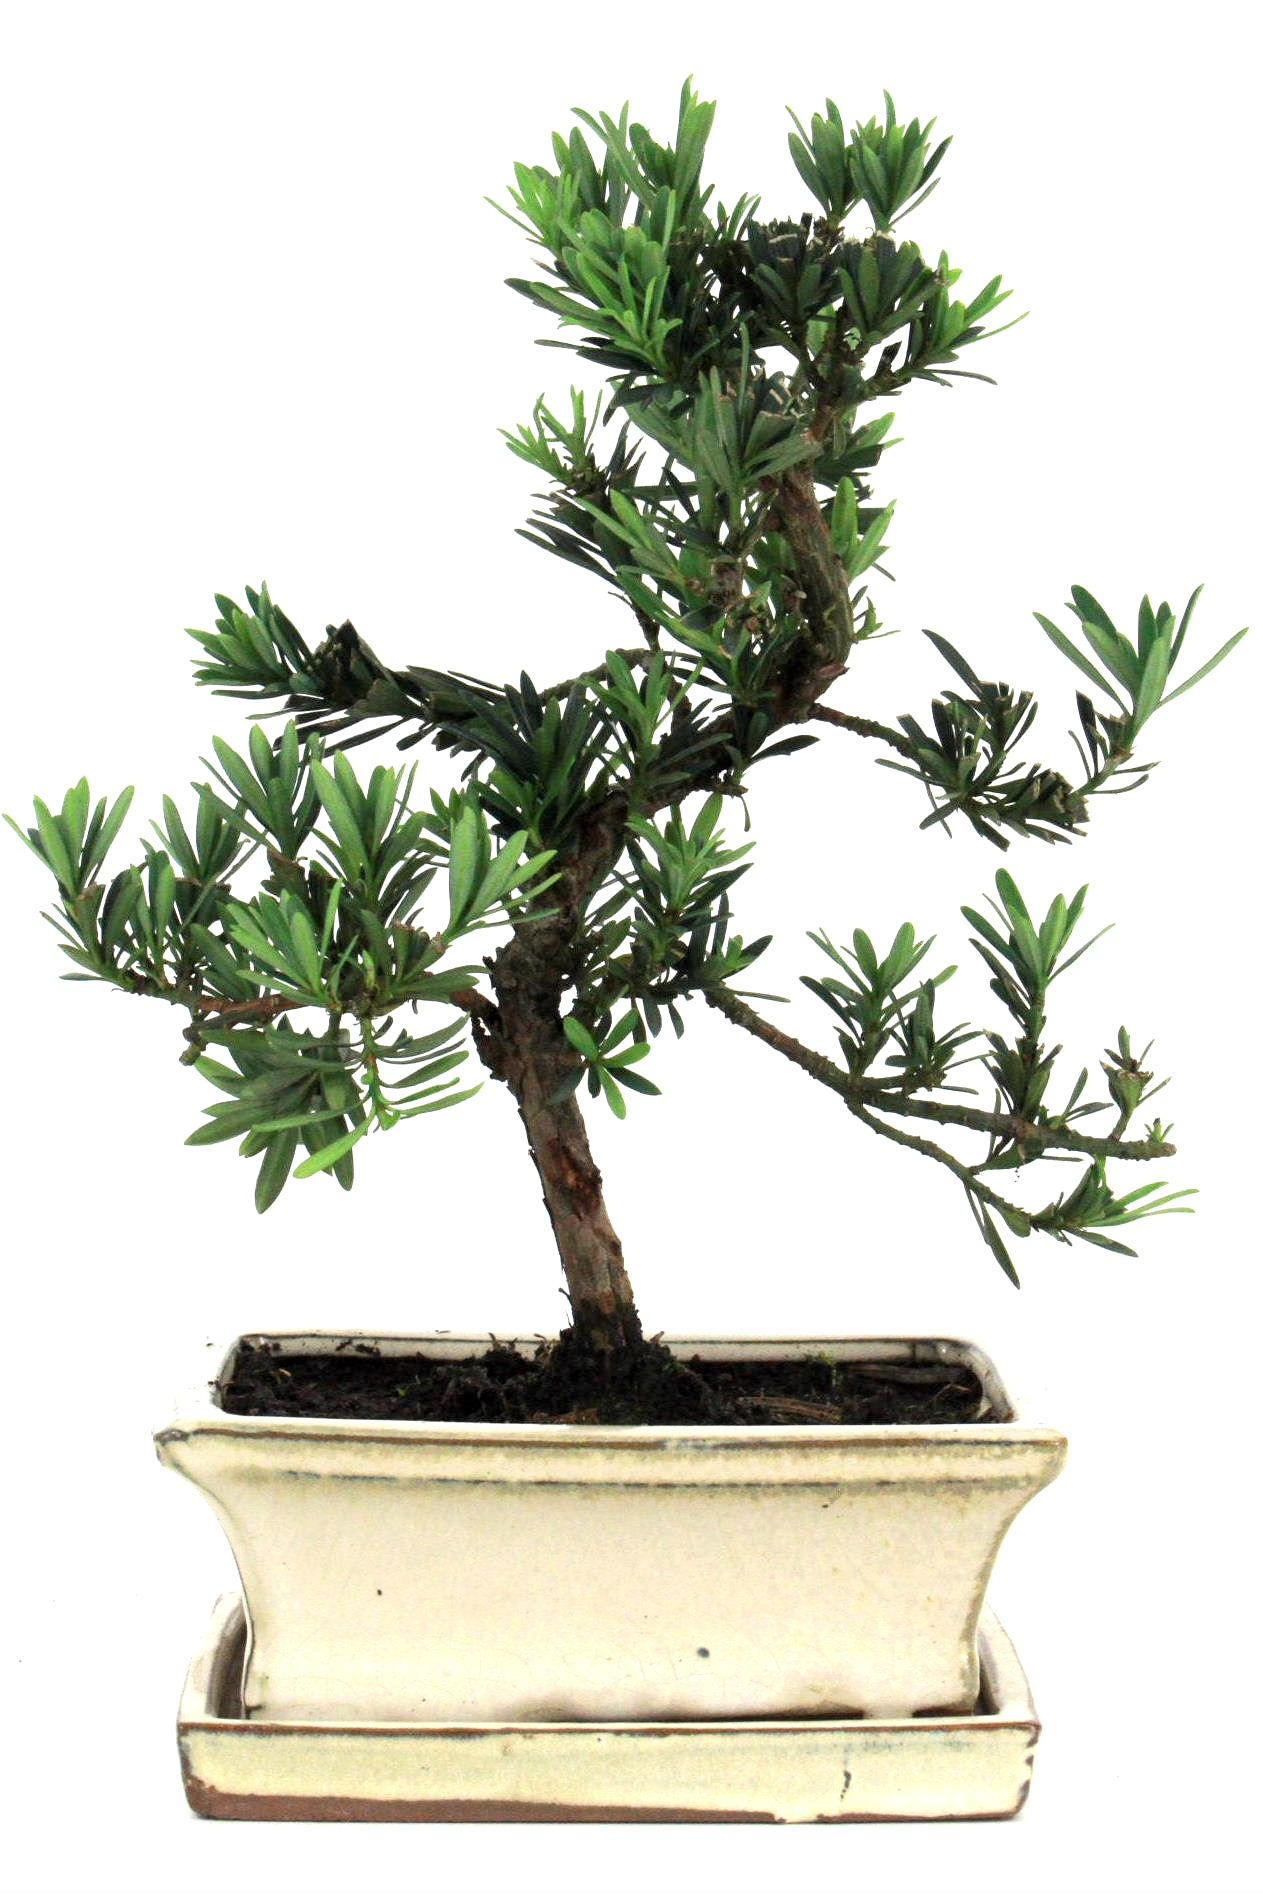 Steineibe bonsai 30 35 cm 1636 bei oyaki bonsai kaufen for Bonsai onlineshop